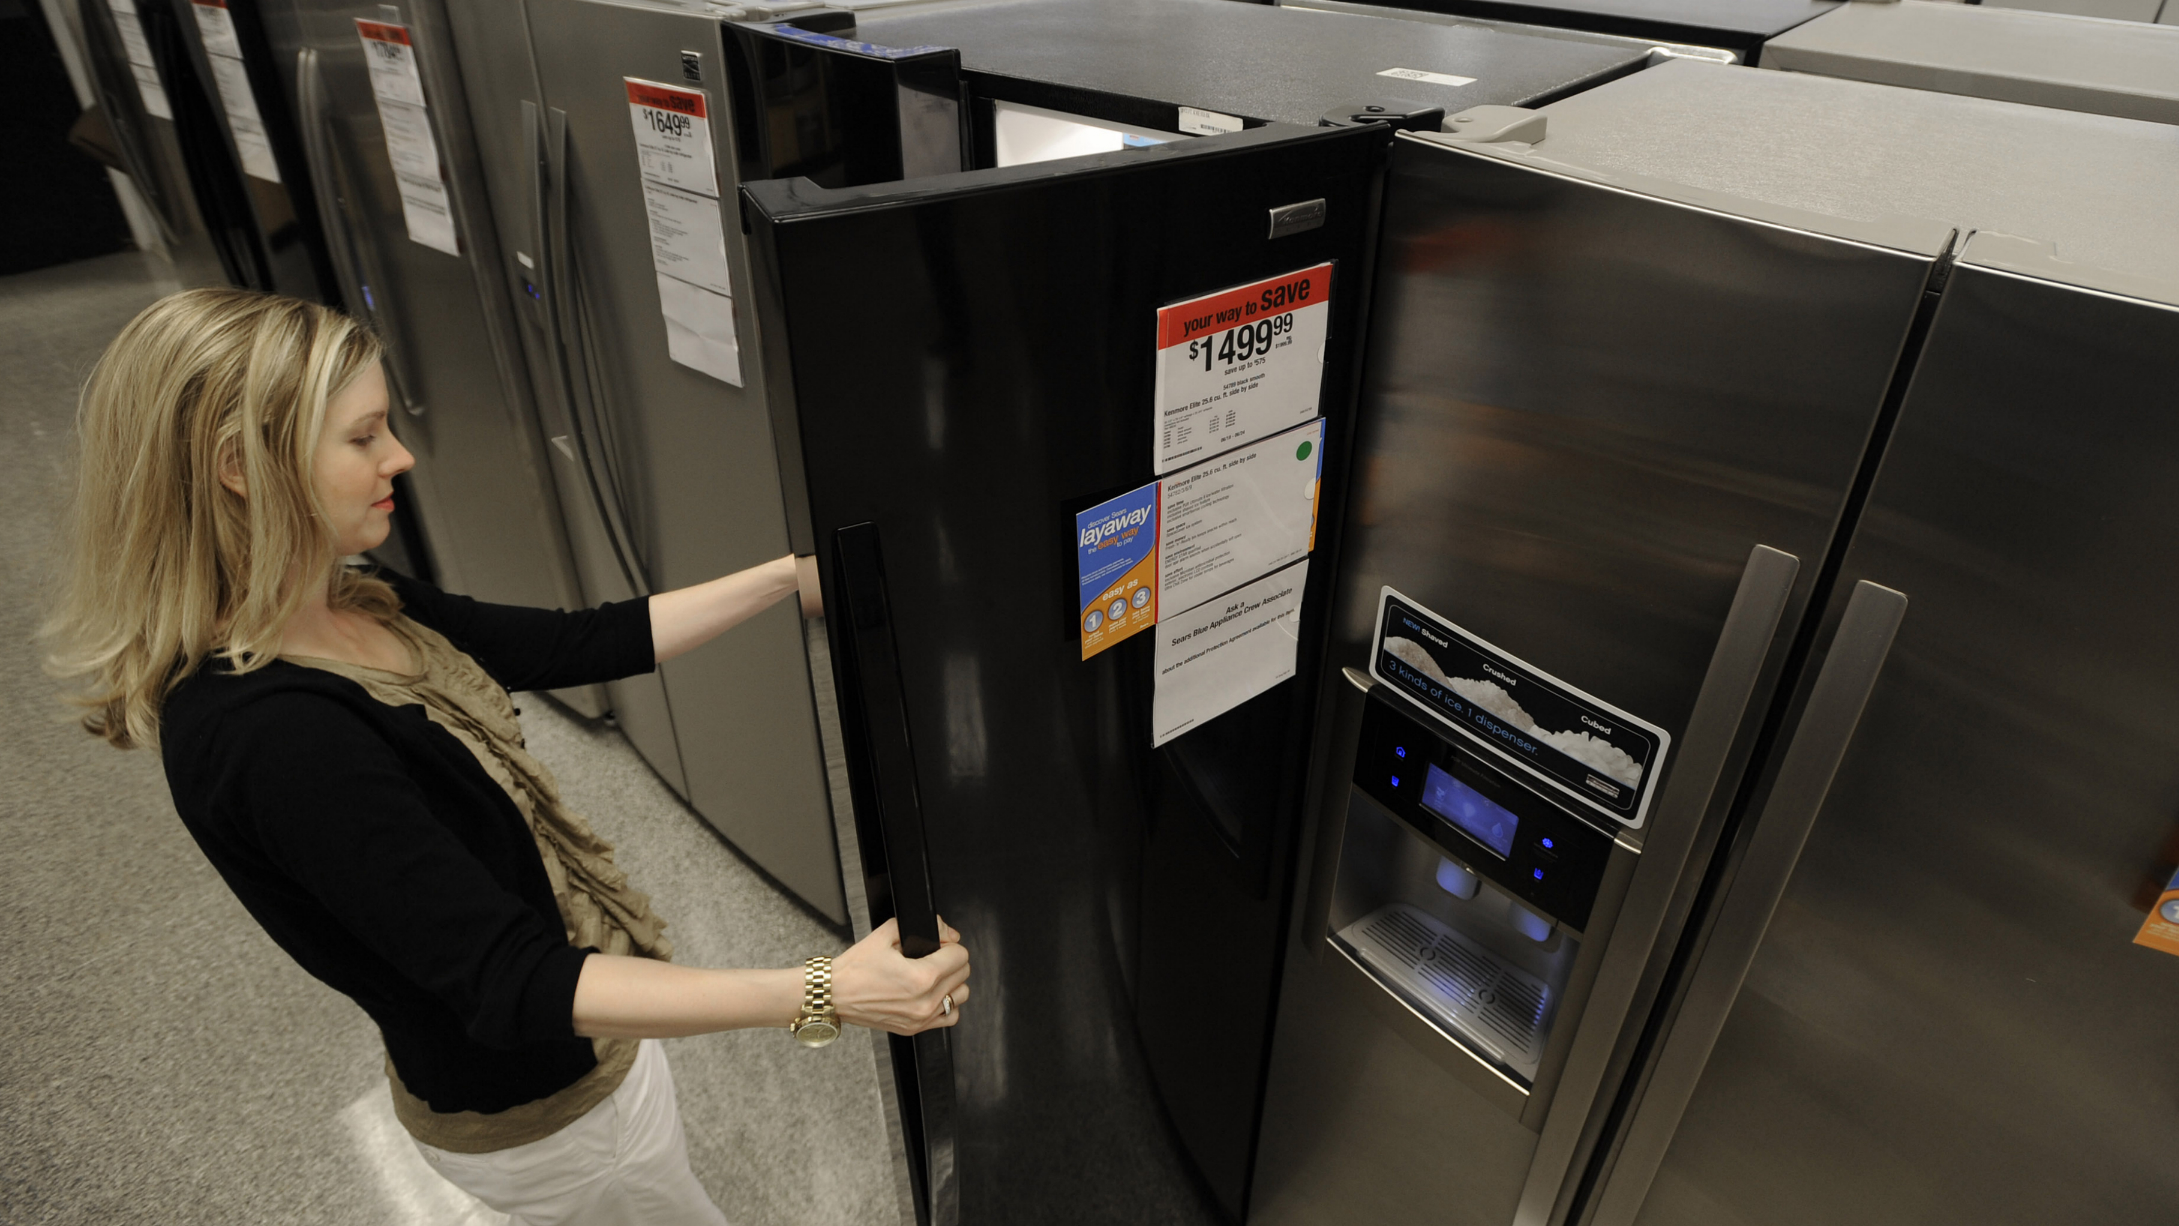 In this photograph taken by AP Images for Sears Holdings Corporation, A consumer checks out a refrigerator at a local Sears' store. The retailer recently extended its layaway program to include home appliances in an effort to help consumers who haven't taken advantage of the government's appliance rebate program. For more information, visit www.Sears.com/layaway. (Paul Beaty/ AP Images for Sears Holdings Corporation